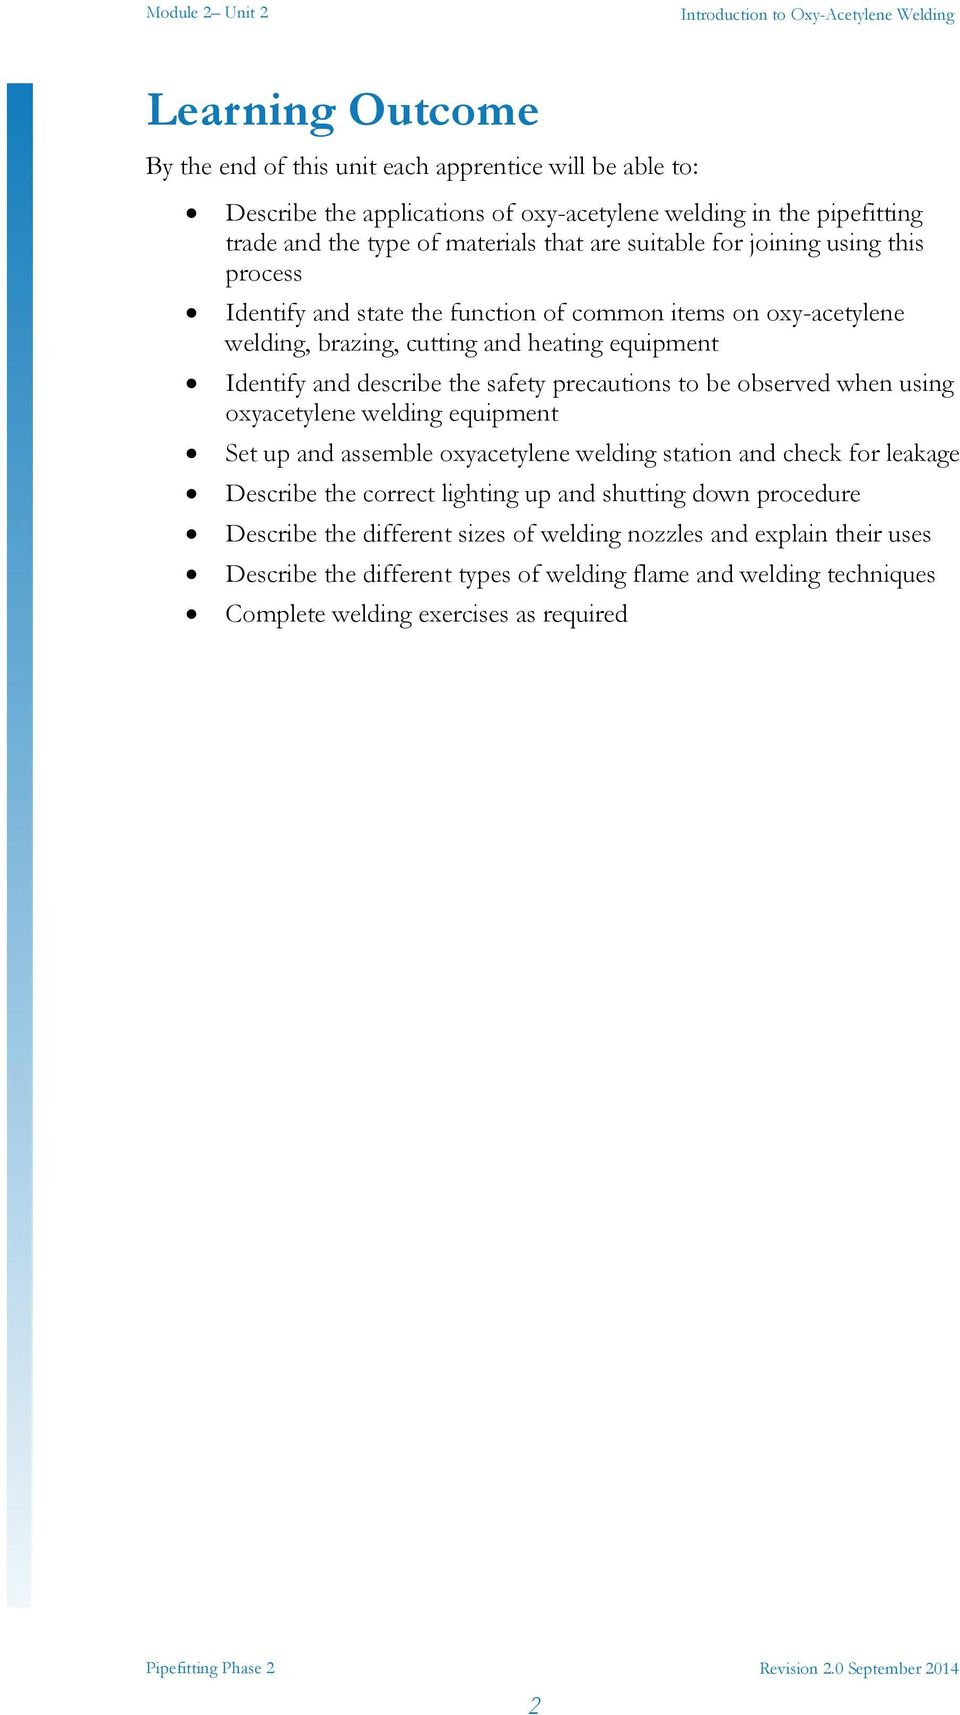 Introduction To Oxy Acetylene Welding Pdf Equipment Diagram Precautions Be Observed When Using Oxyacetylene Set Up And Assemble Station